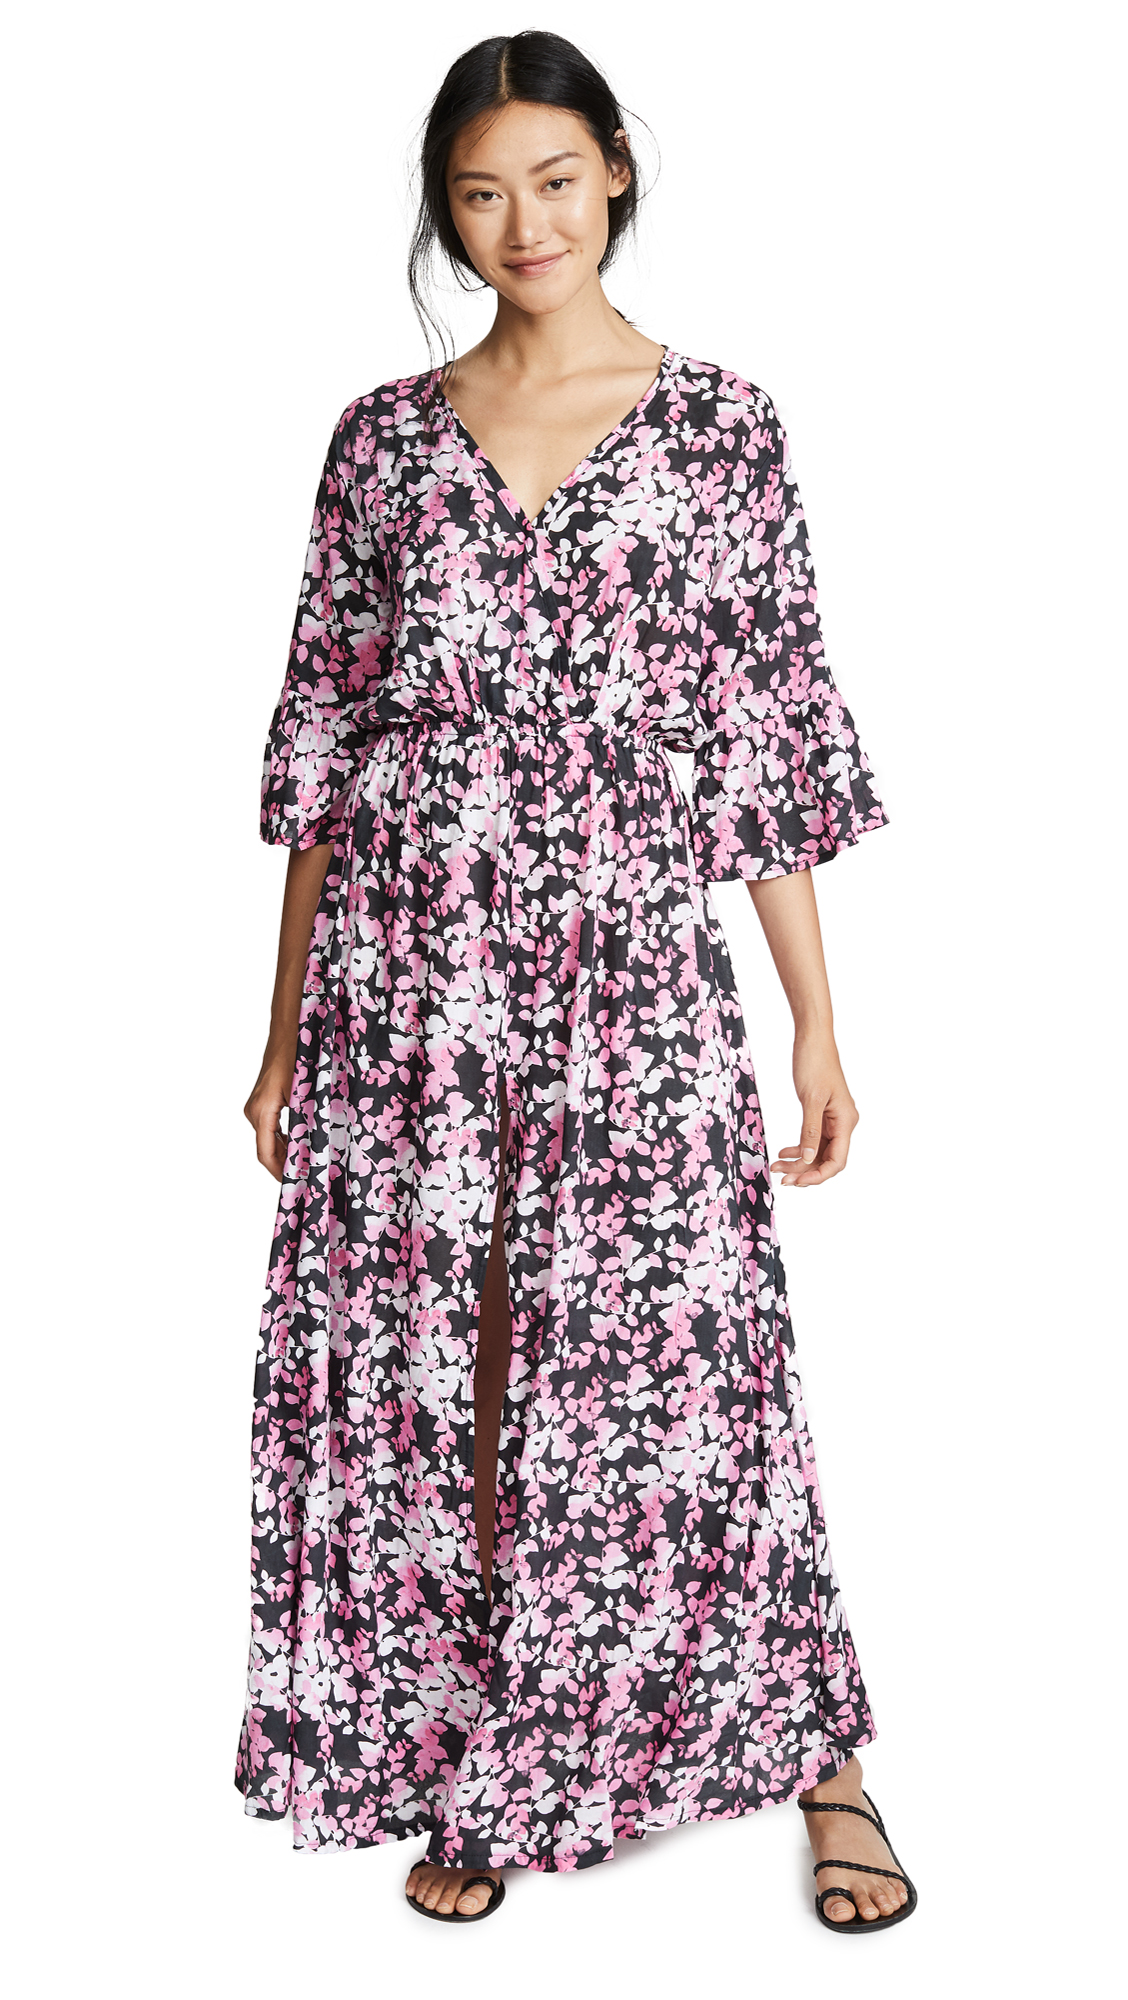 TIARE HAWAII Surry Maxi Dress in Shimmer Black/Pink